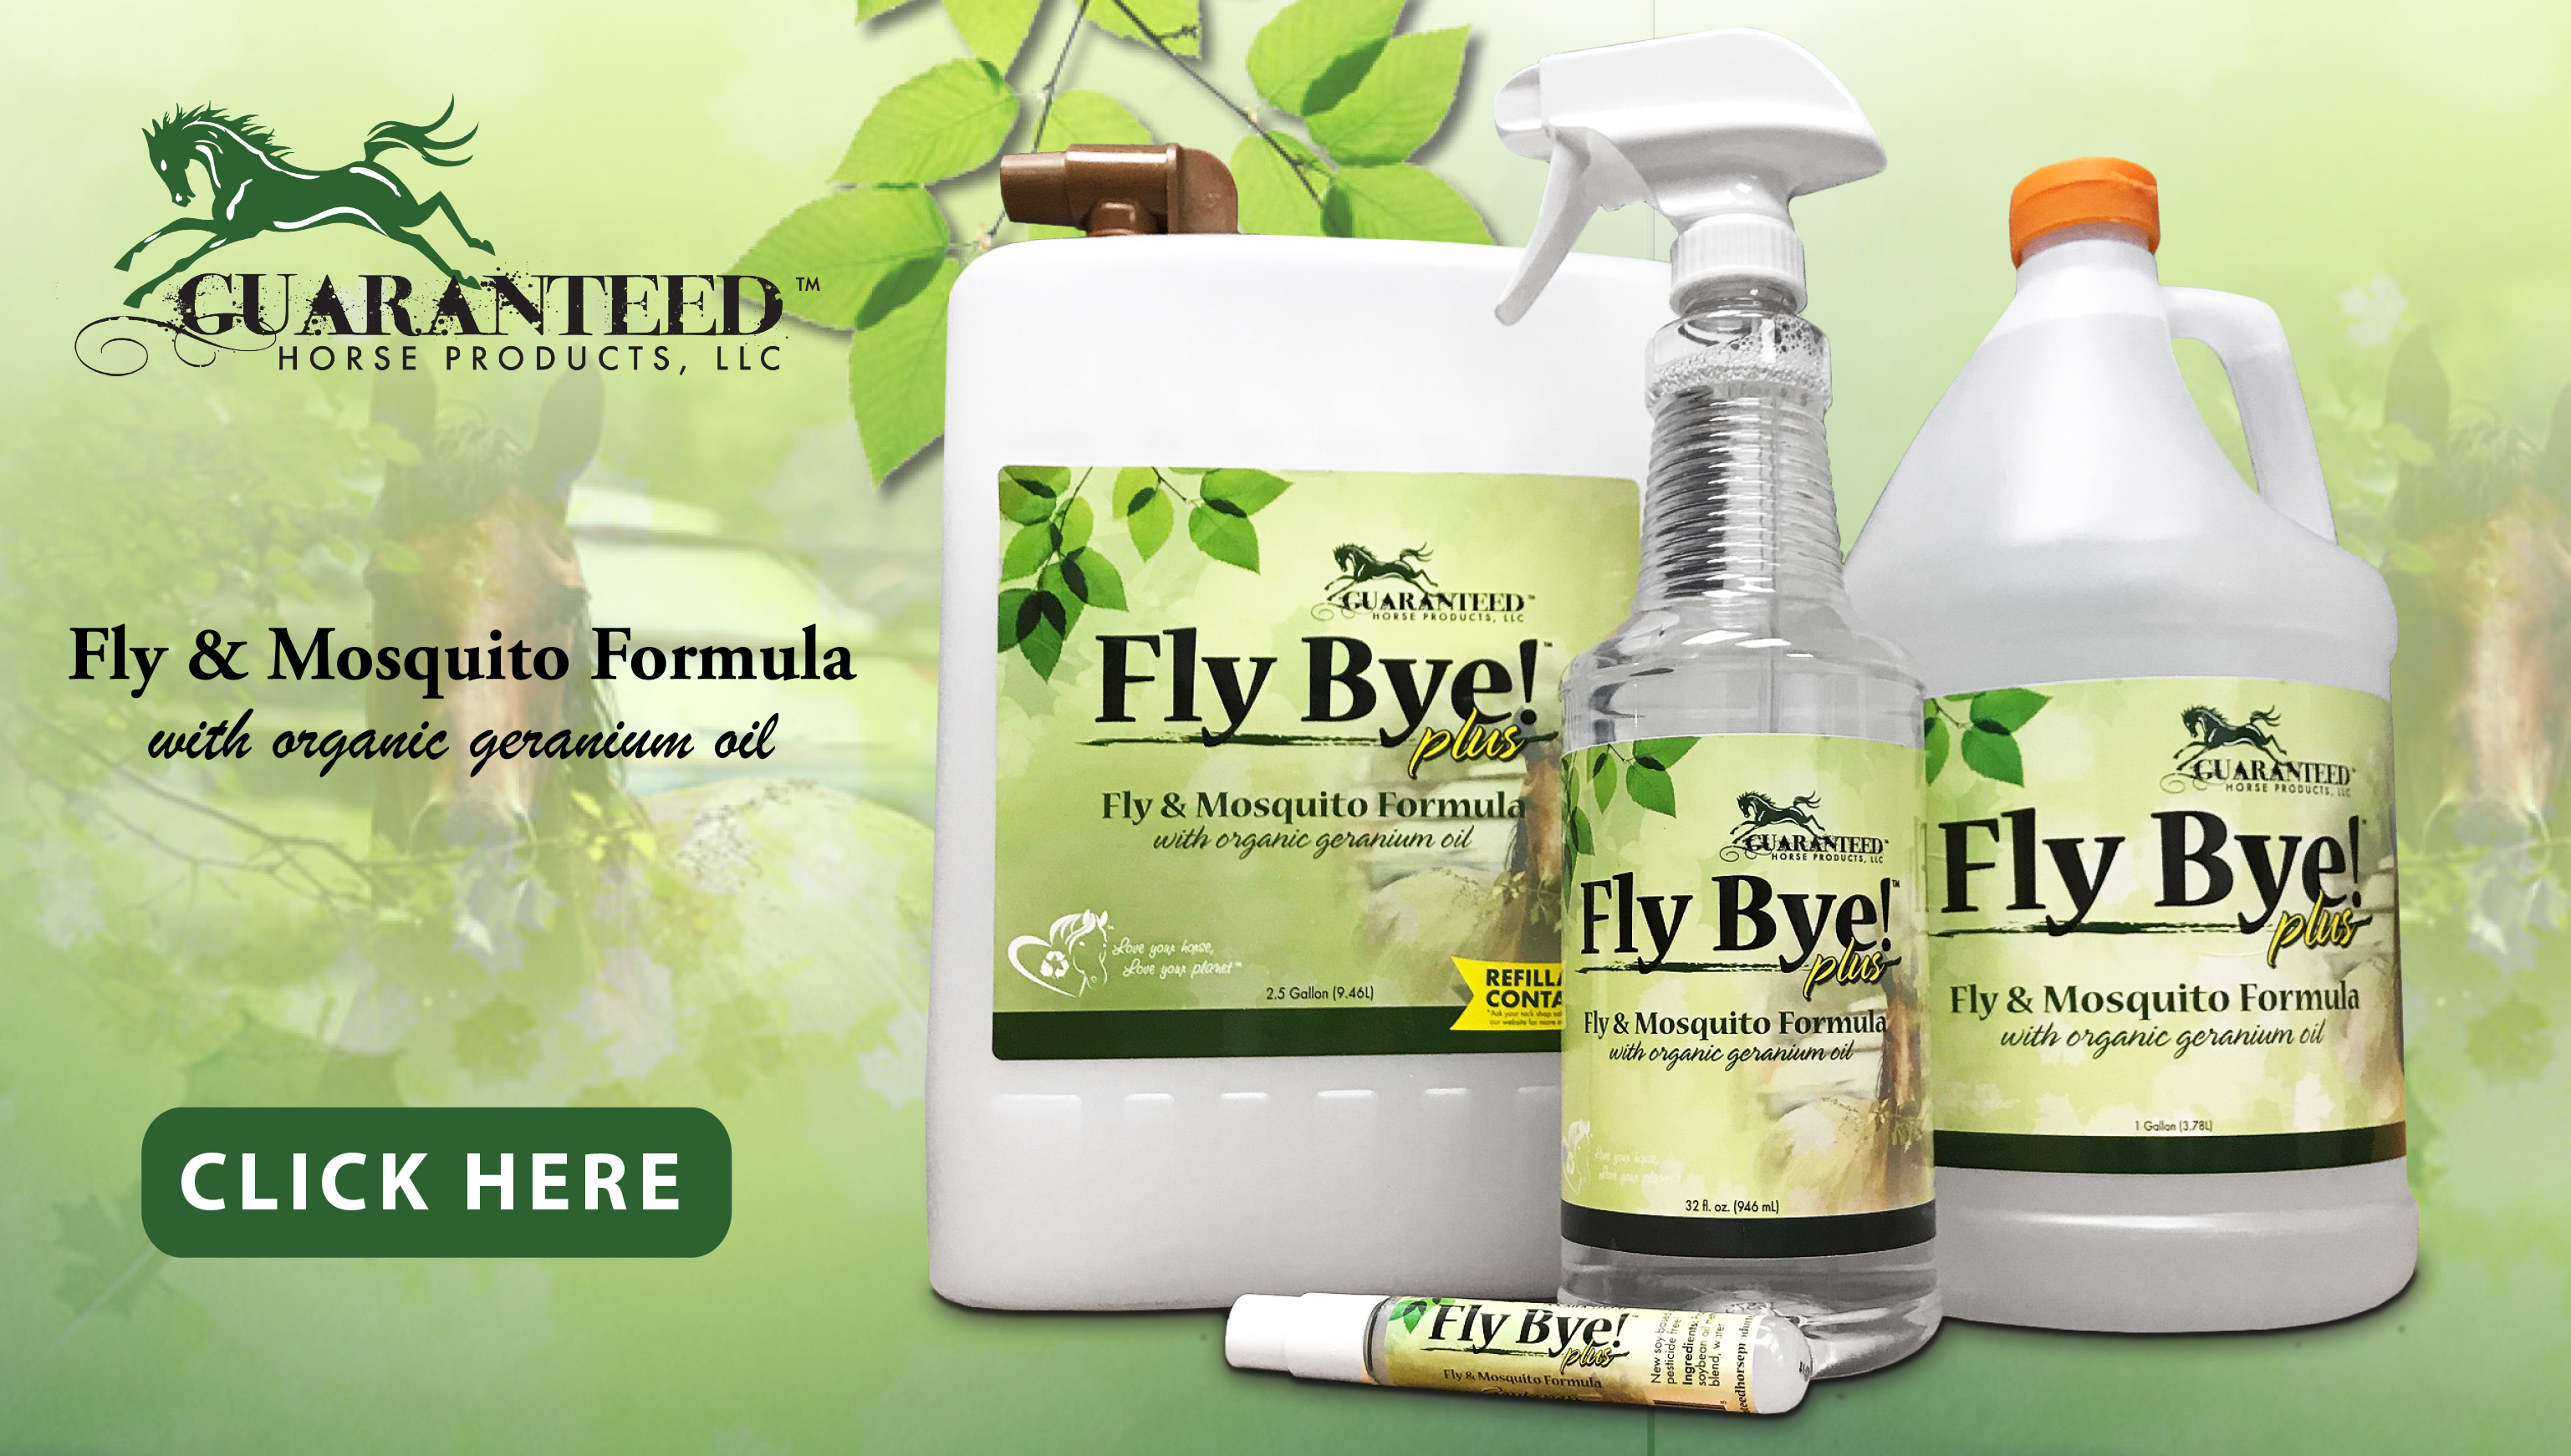 Fly Bye! Plus from Guaranteed Horse Products